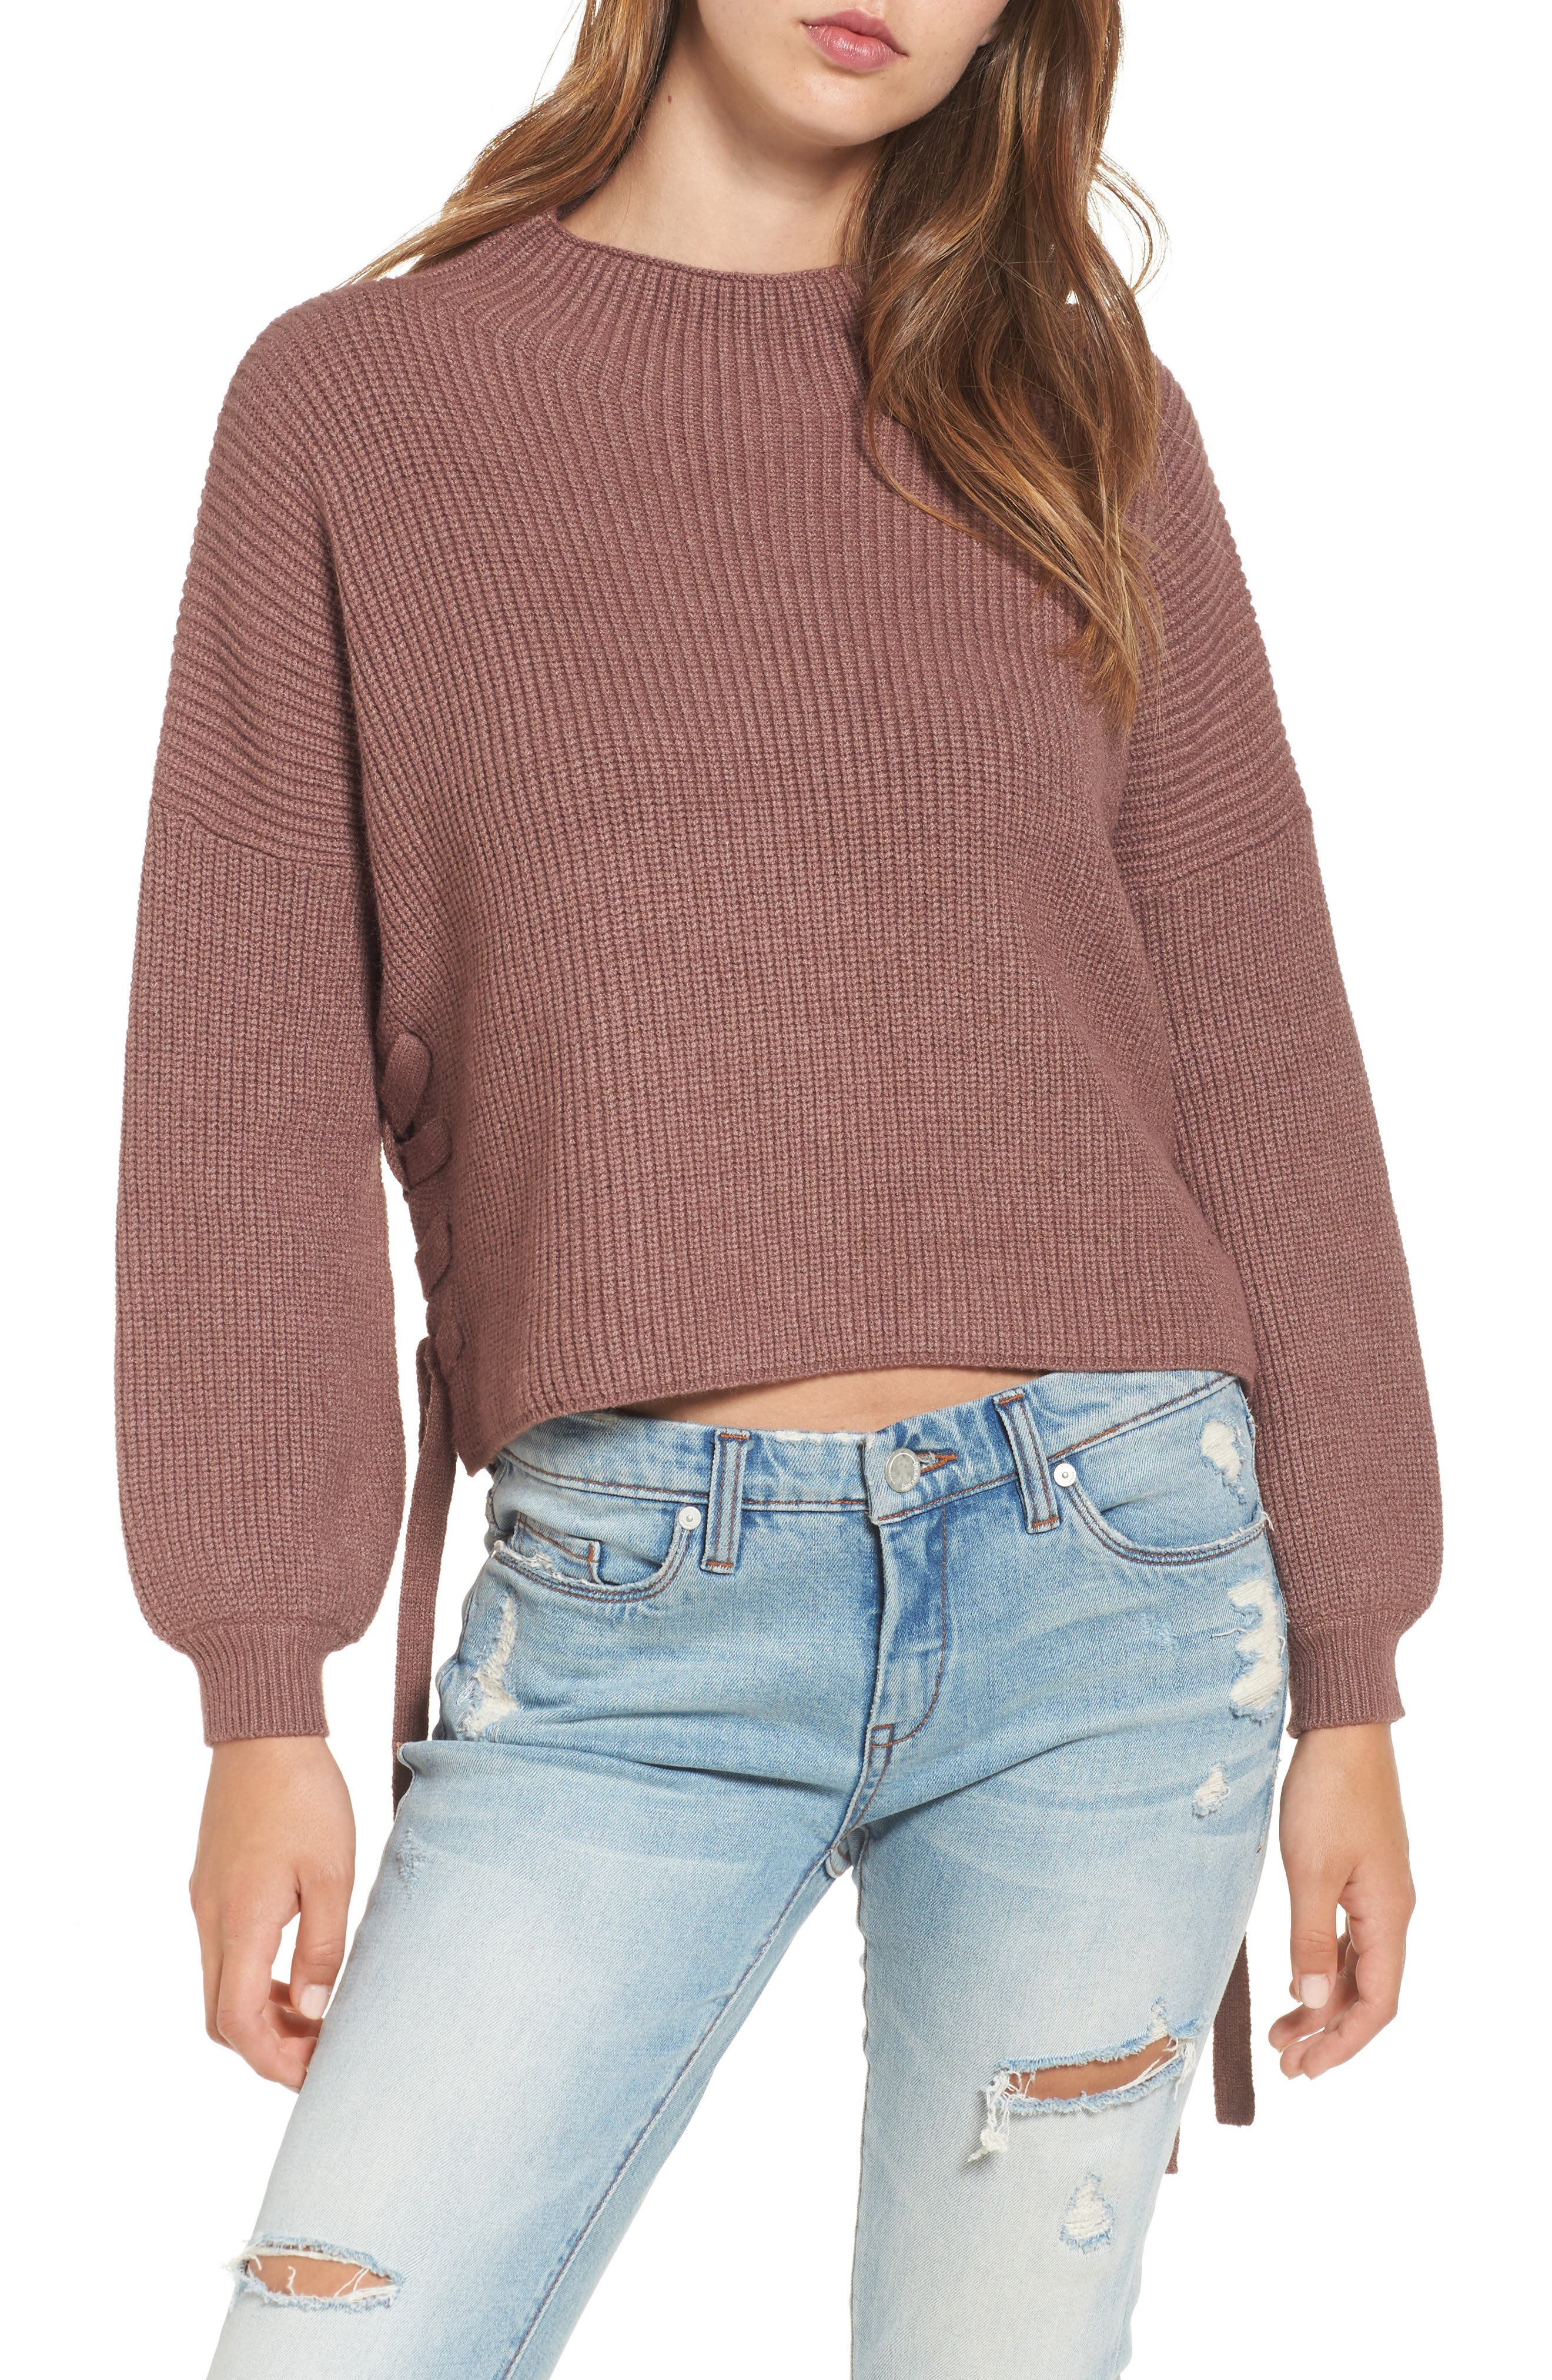 Alternate Image 1 Selected - Dreamers by Debut Lace-Up Sweater